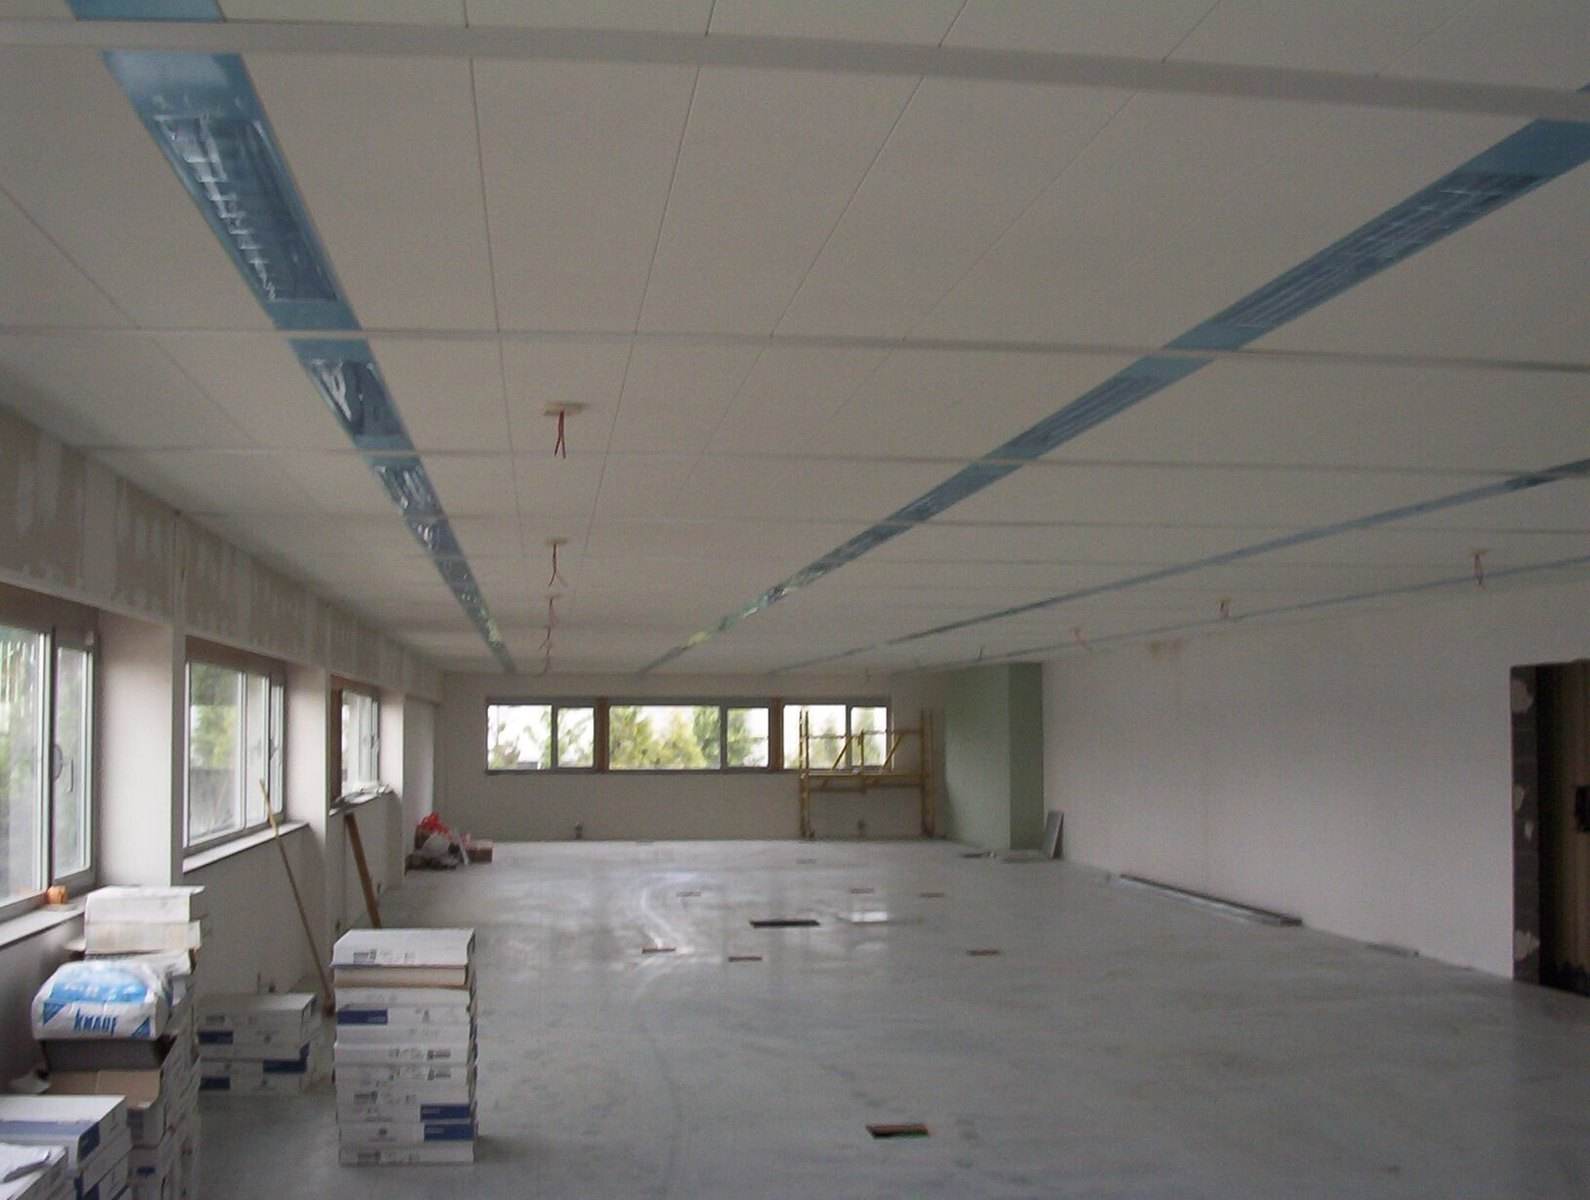 Plafond renovation top imgjpg imgjpg imgjpg with plafond for Faux plafond renovation